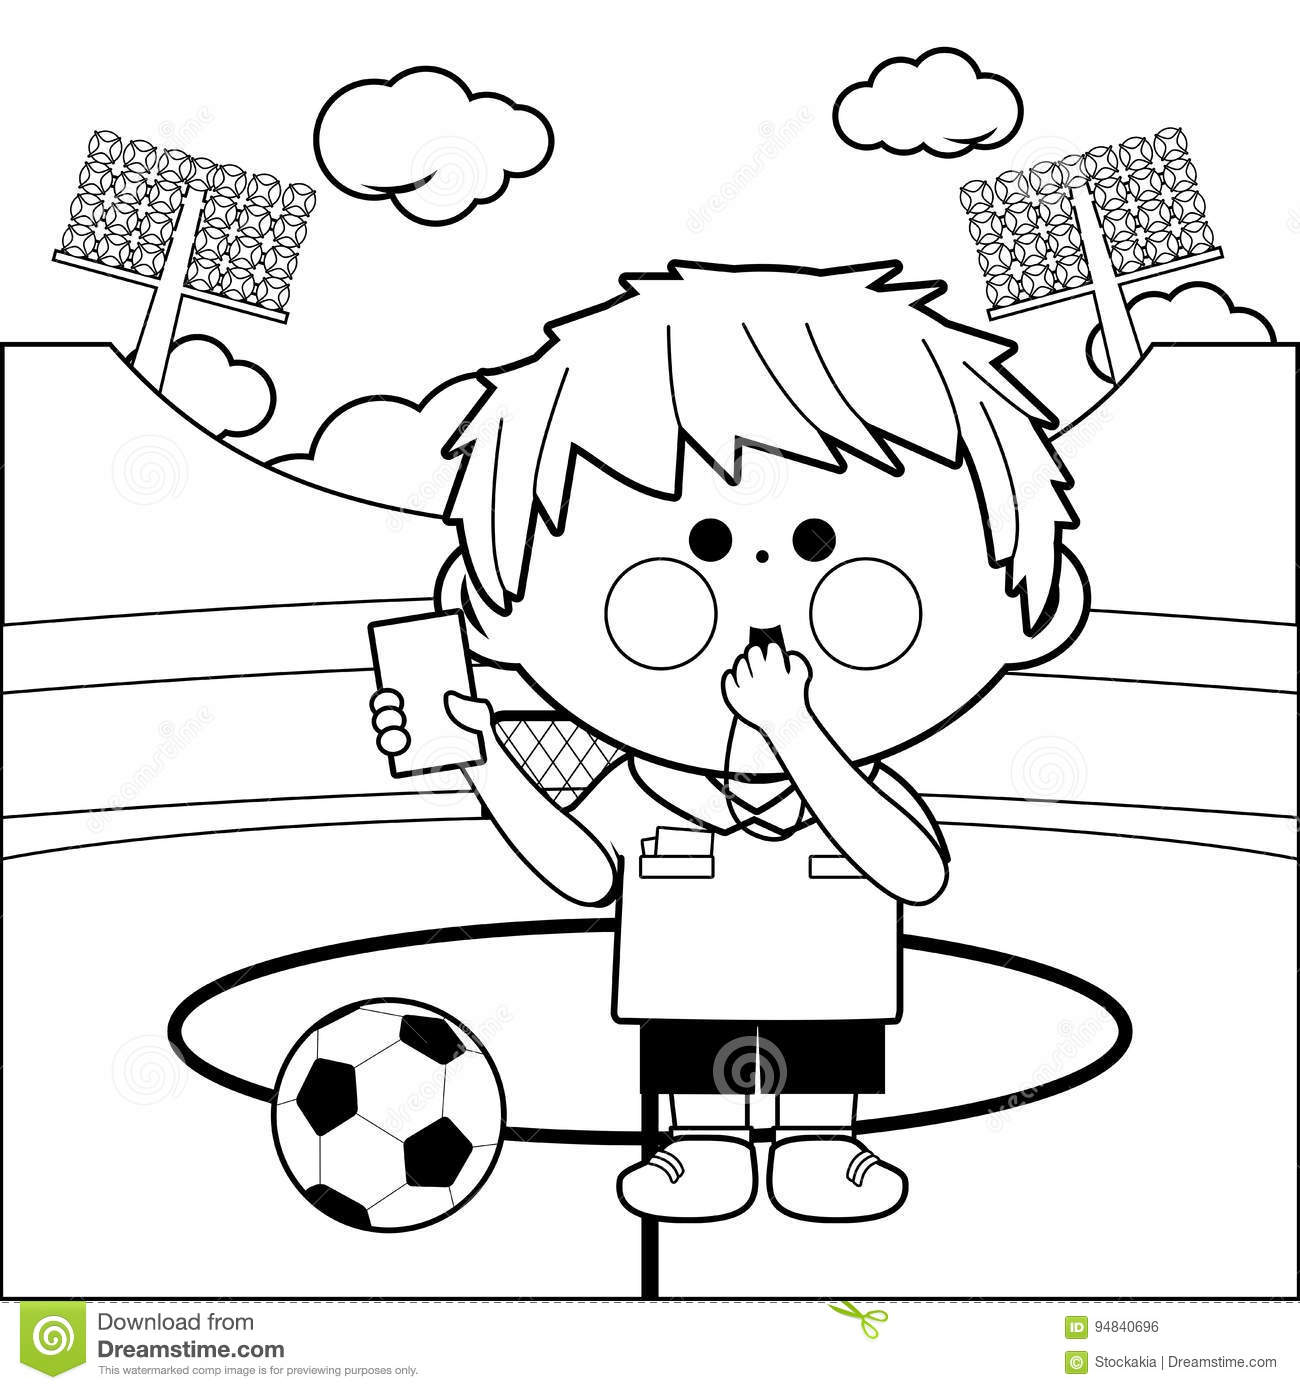 Soccer referee at a stadium blowing a whistle and showing a red card black and white coloring page illustration